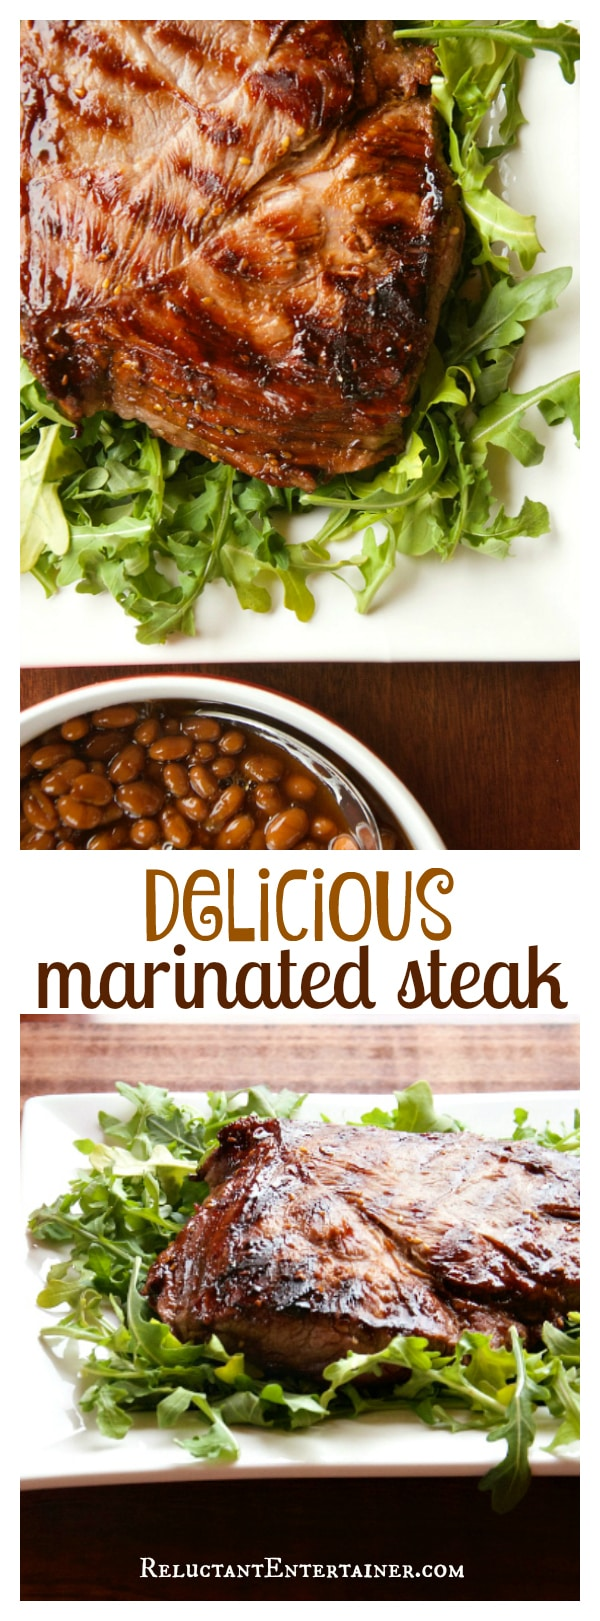 Delicious Marinated Steak - Reluctant Entertainer